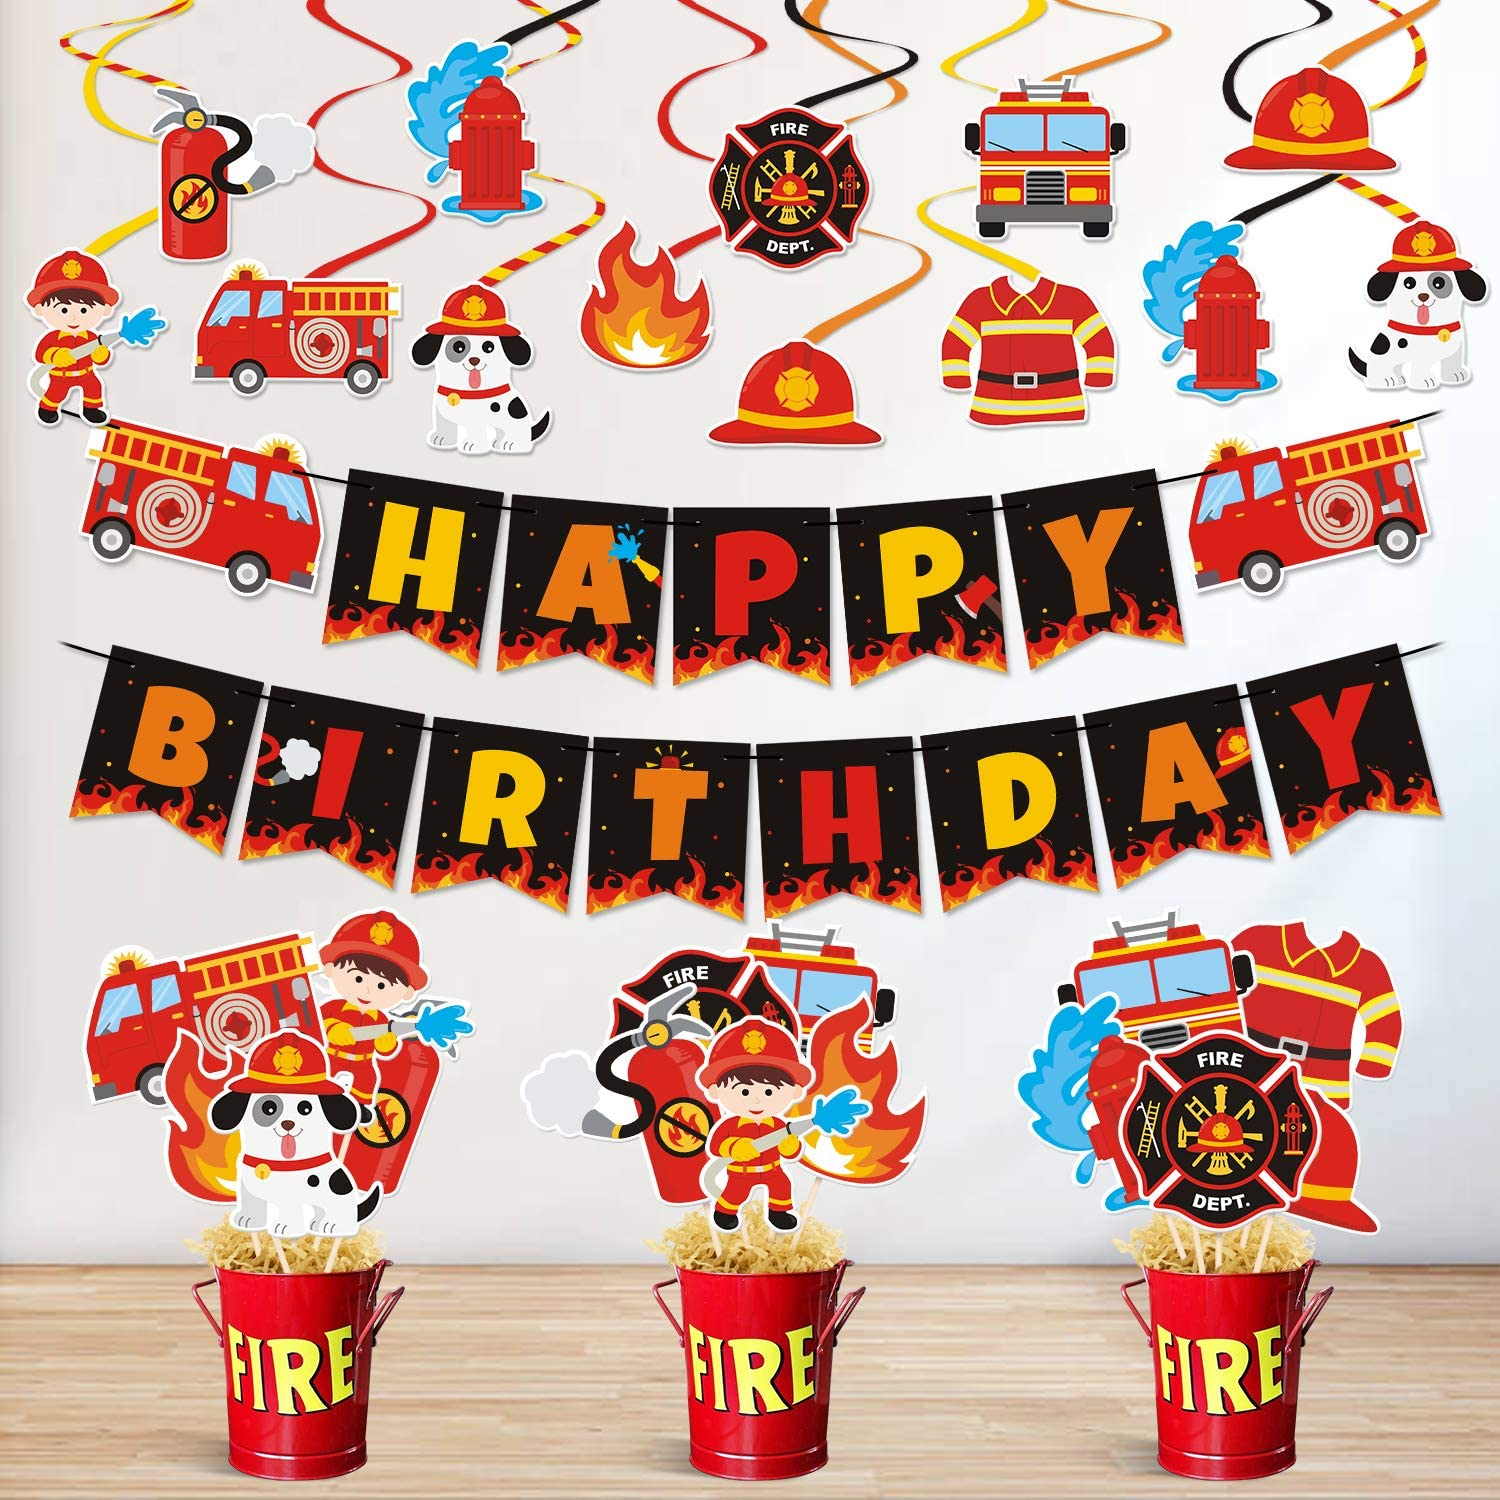 Bessmoso Fire Truck Party Decorations Set Happy Birthday Banner Centerpiece Sticks Hanging Swirl Decorations for Fireman Firefighter Fire Engine Rescue Theme Birthday Party Supplies